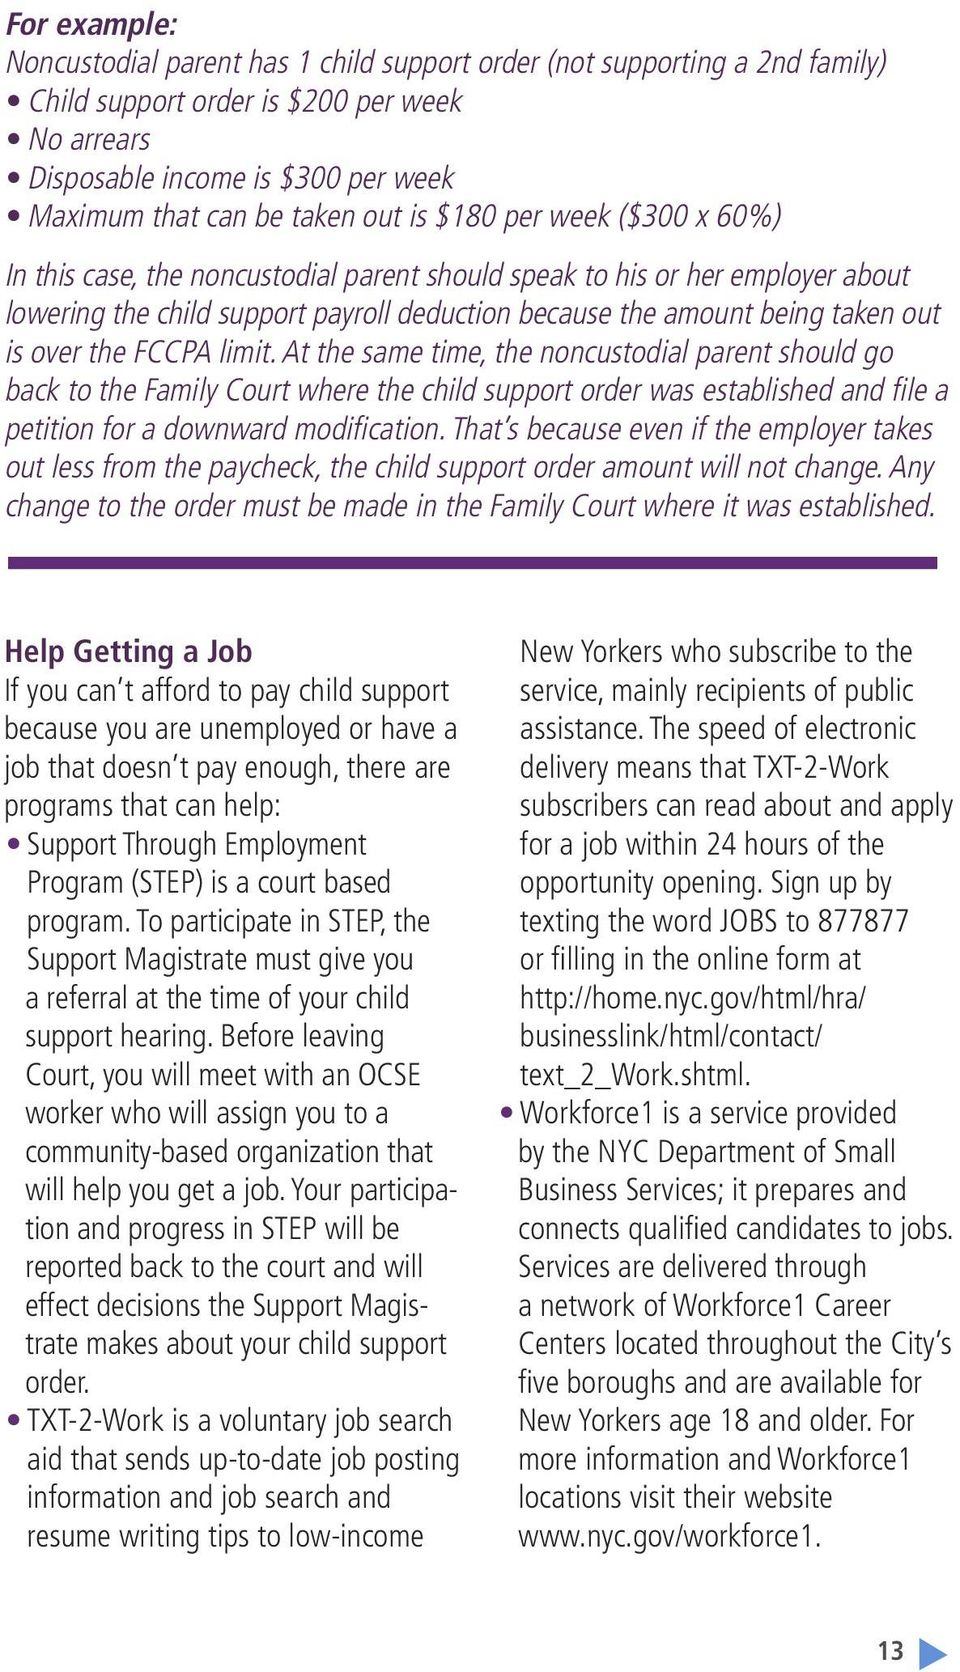 over the FCCPA limit. At the same time, the noncustodial parent should go back to the Family Court where the child support order was established and file a petition for a downward modification.